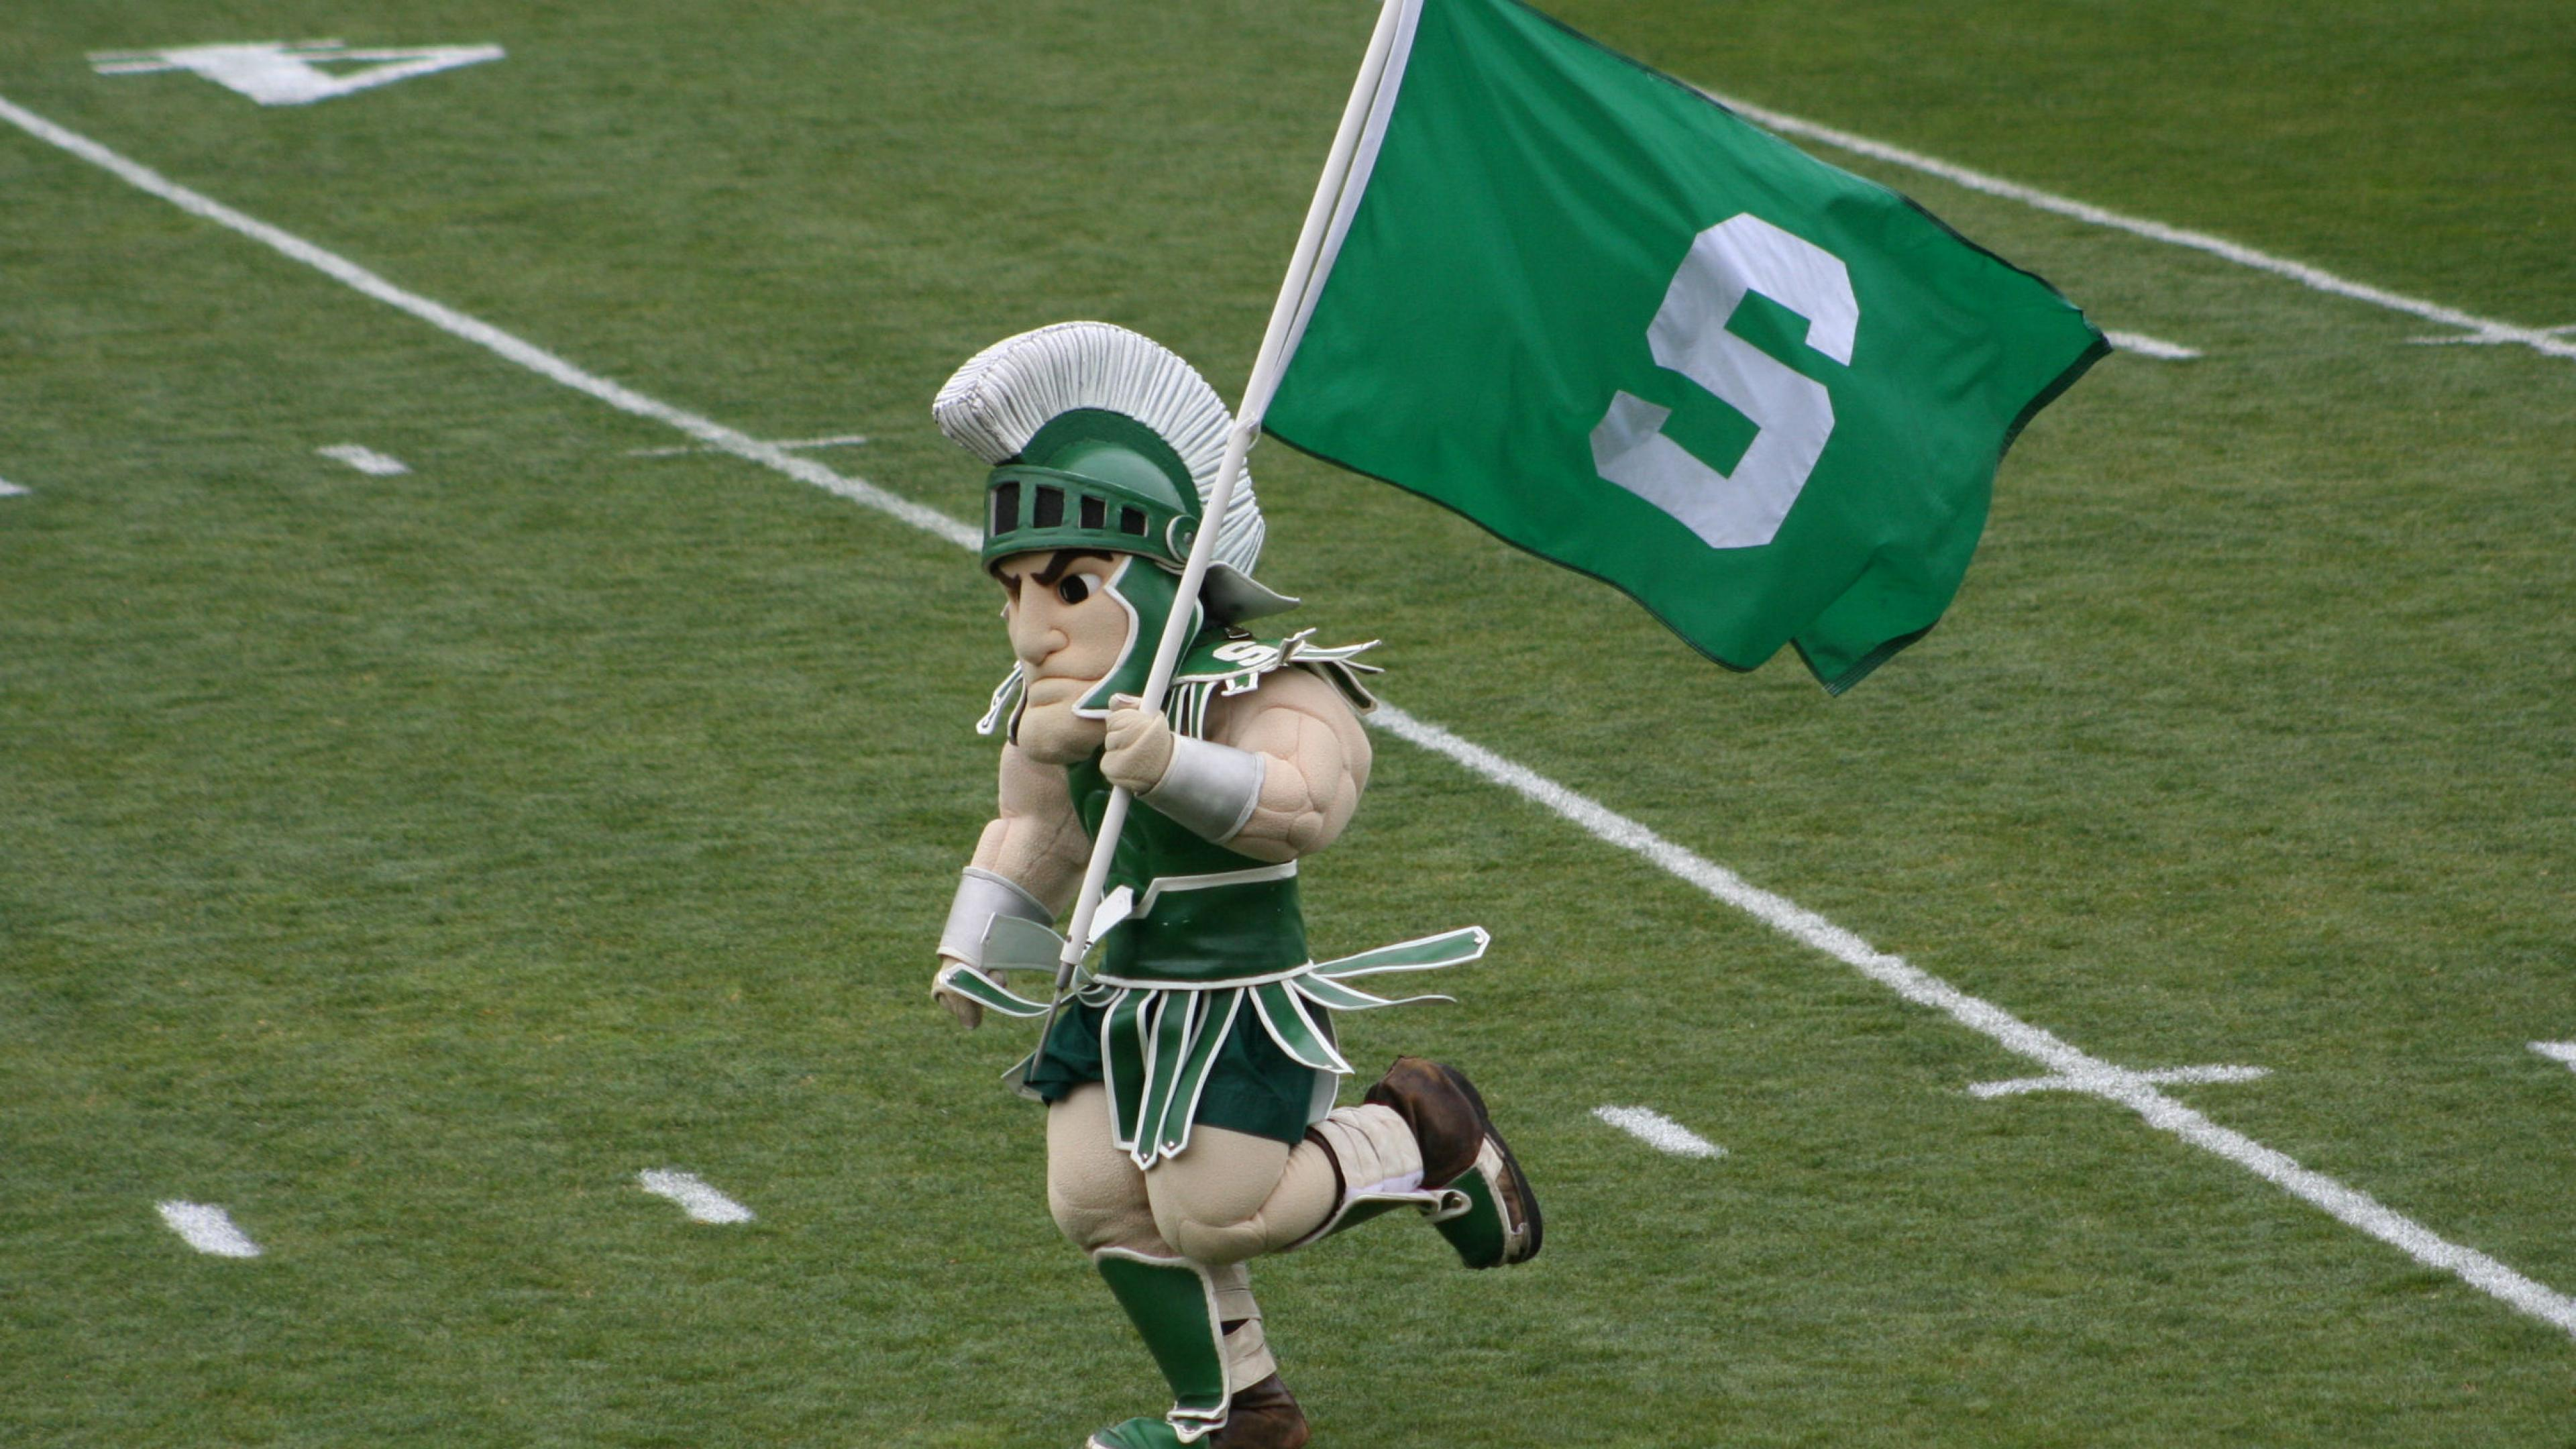 Michigan State Spartans Sparty Msu Abstract hd wallpaper #923112